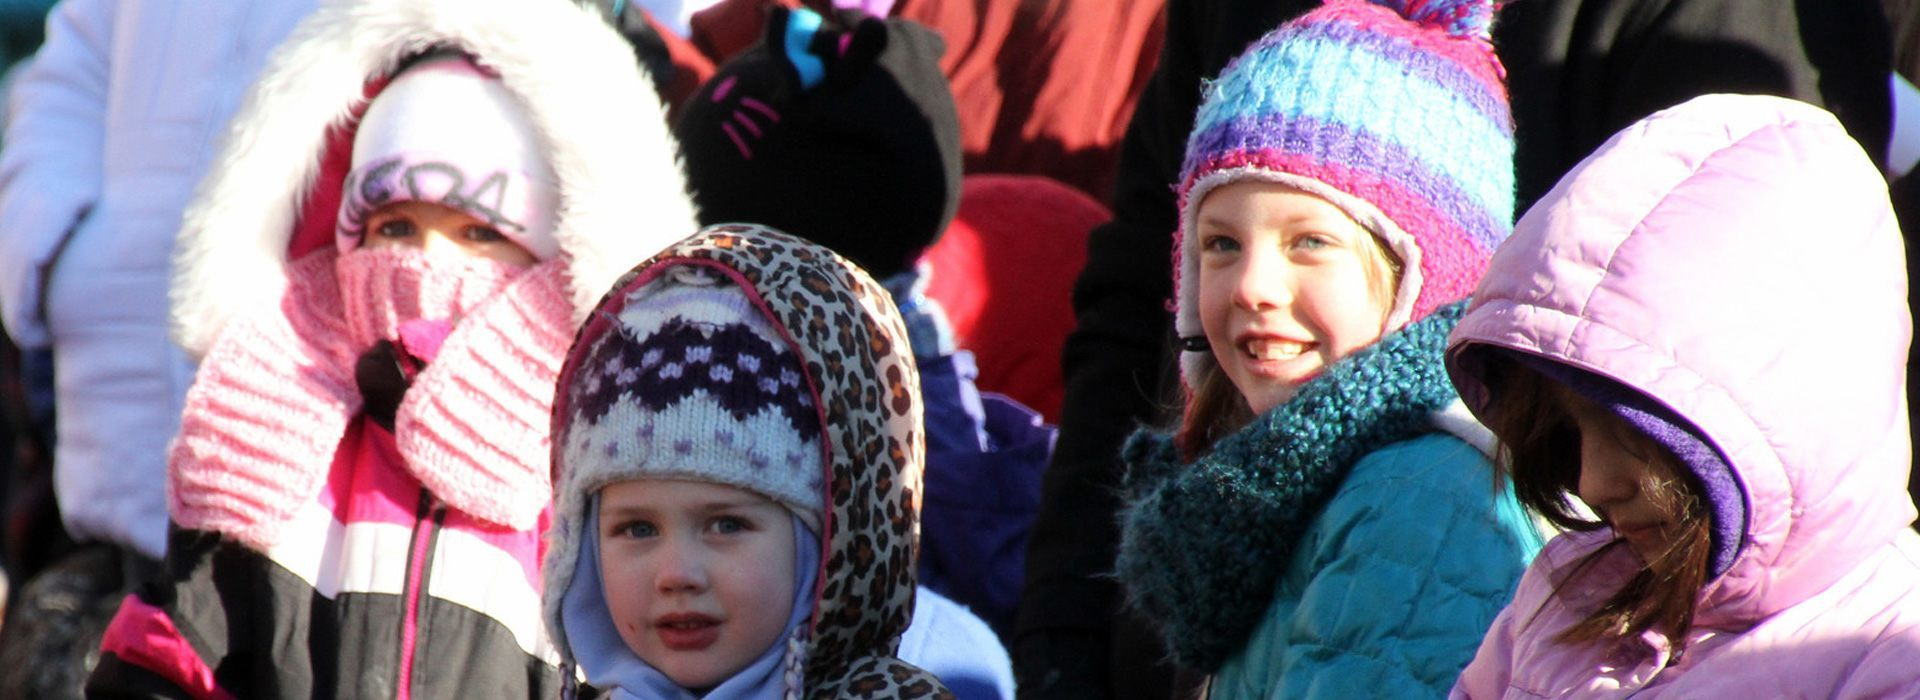 frequently asked questions saint paul winter carnival